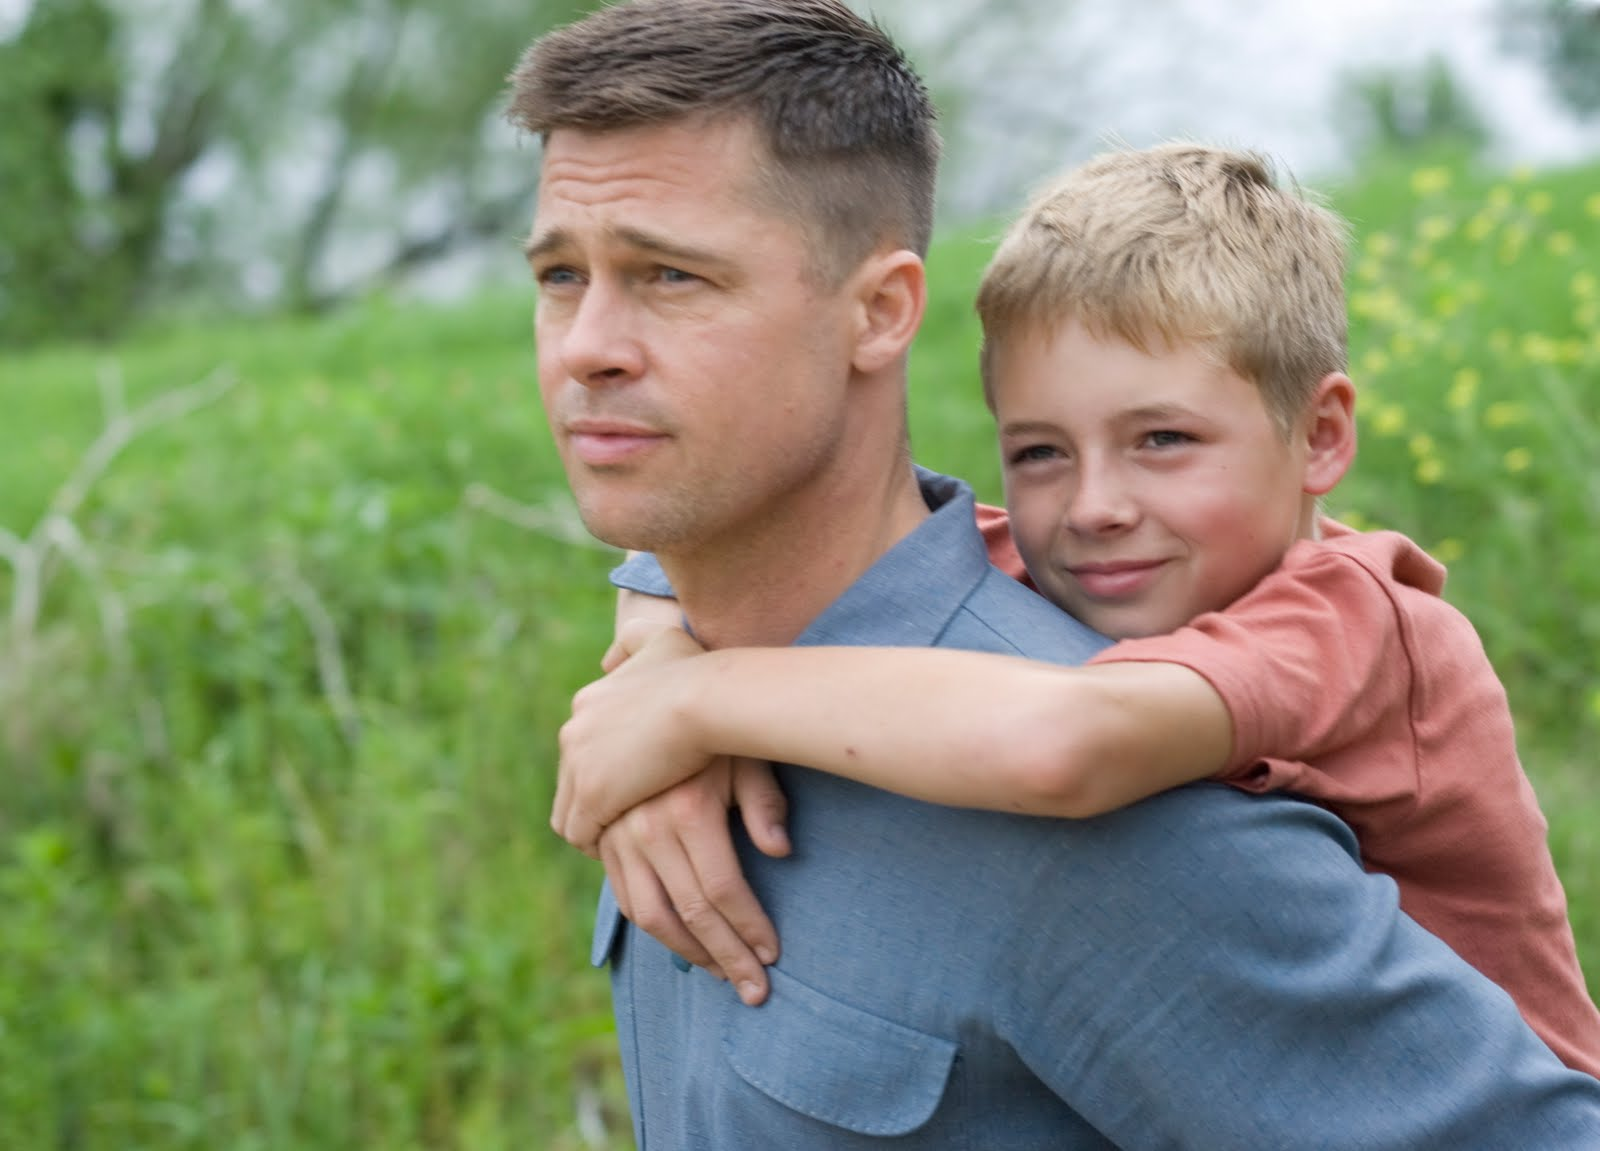 http://4.bp.blogspot.com/-bMFadn3m8ks/Tv3xfq1-gdI/AAAAAAAABRs/GxHN-LaM9ng/s1600/tree-of-life-movie-image-brad-pitt-04.jpg